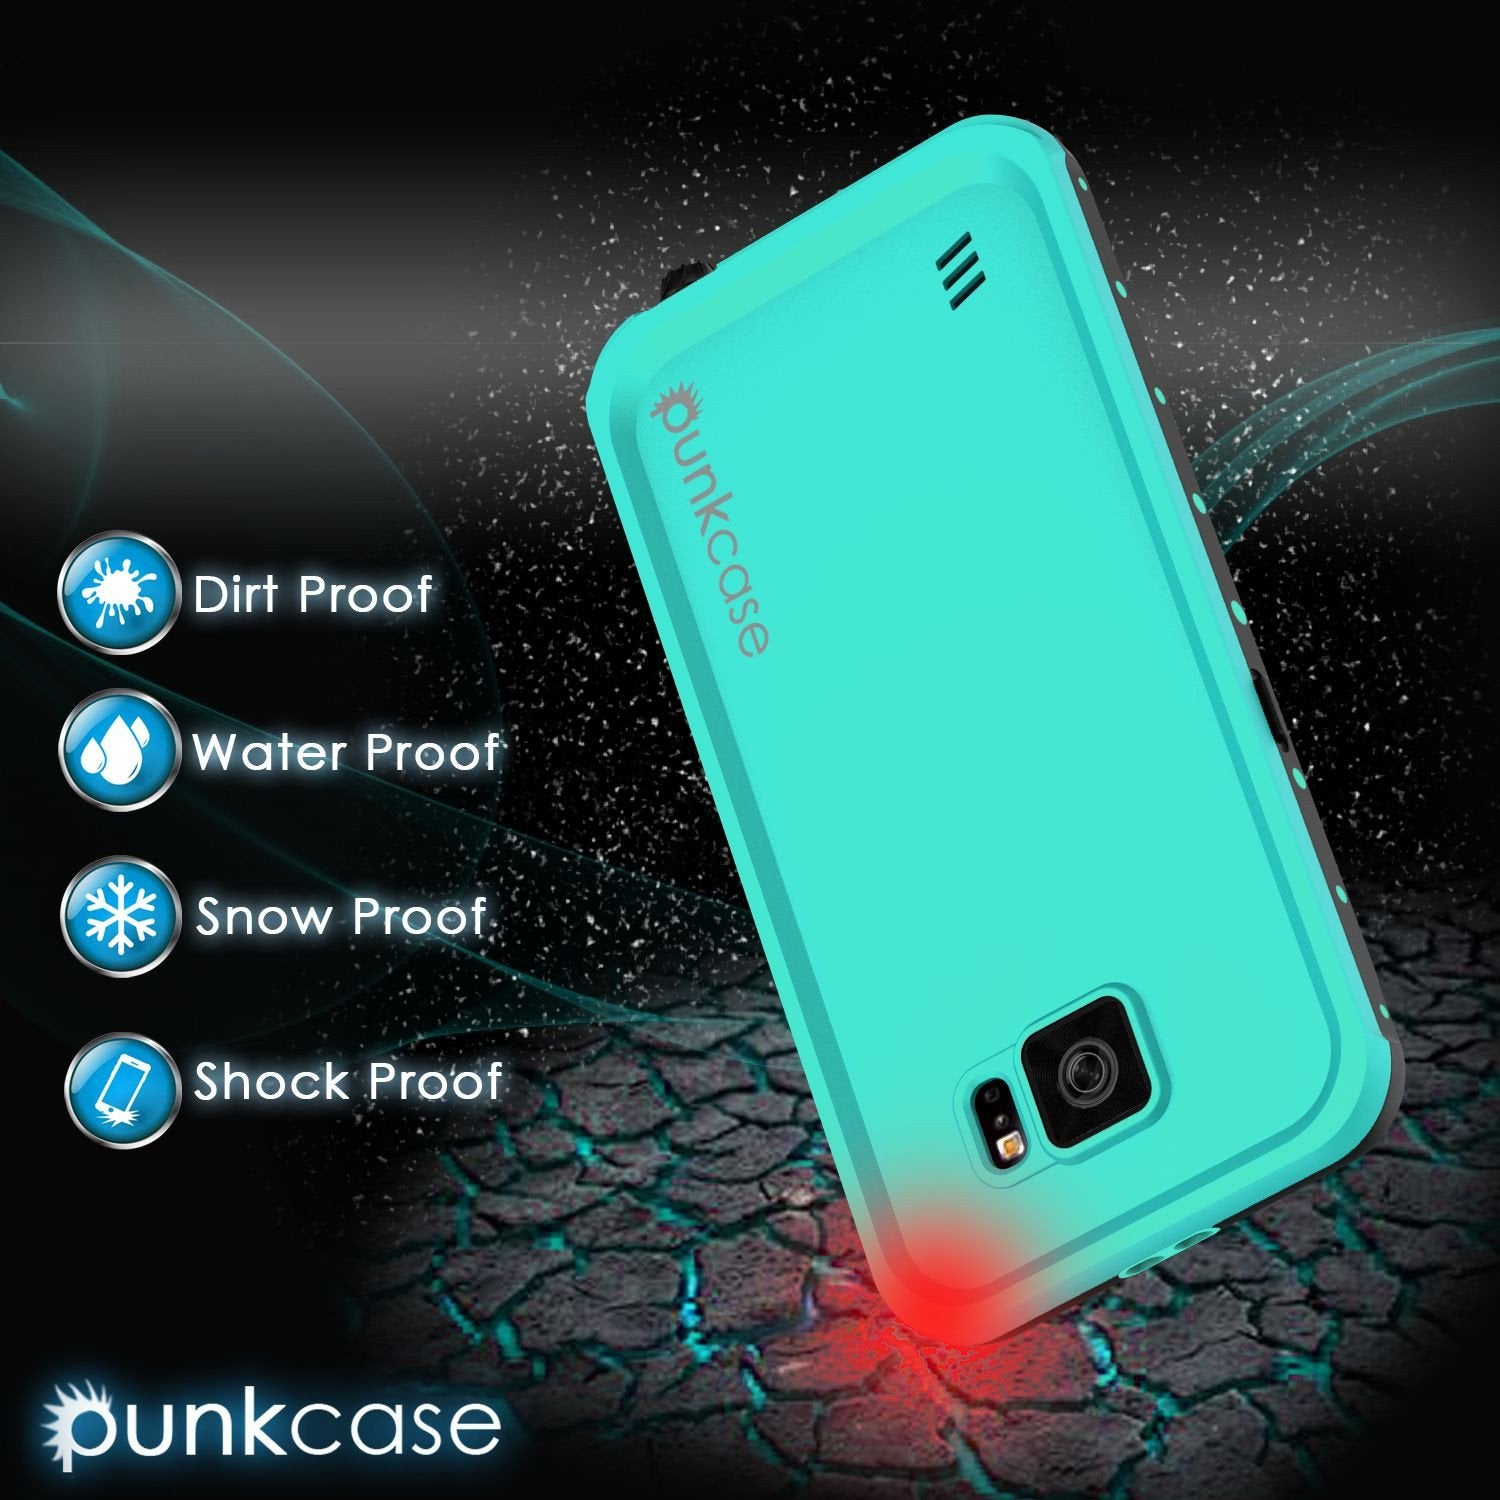 Galaxy S6 Waterproof Case PunkCase StudStar Teal Thin 6.6ft Underwater IP68 Shock/Dirt/Snow Proof - PunkCase NZ